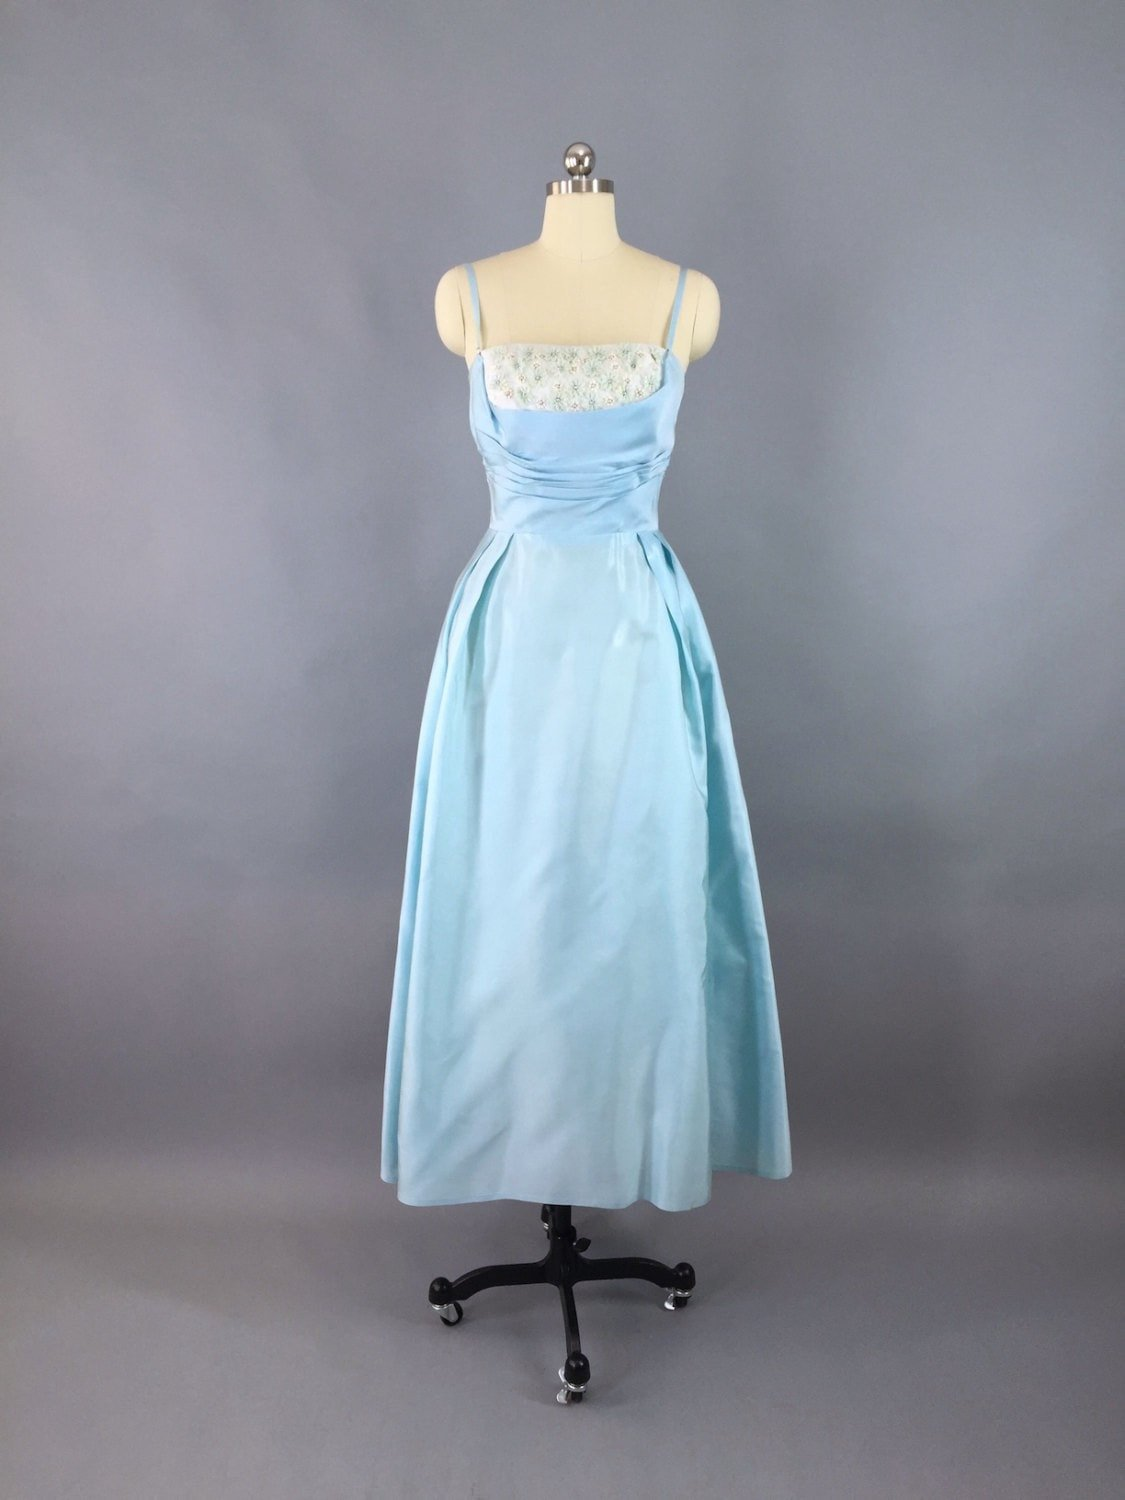 1950s Vintage Sky Blue Formal Party Dress thisbluebird.com #dress #dresses #vintagedress #vintage #vintagedresses #daydress #fashion #vintagefashion #outfit  #thisbluebird